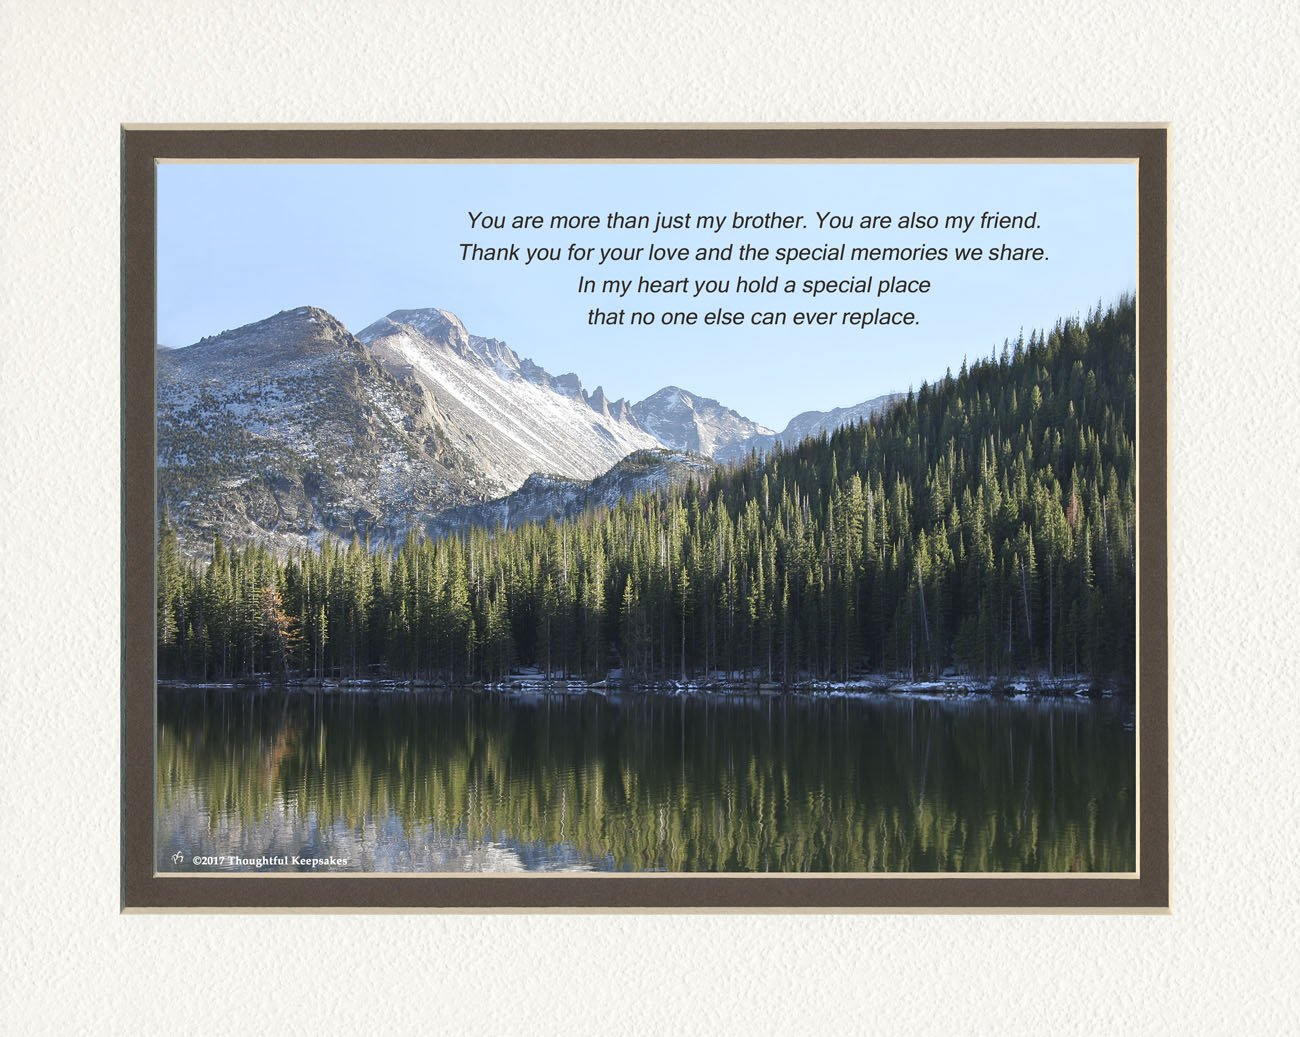 Brother Gift with You are more than just my Brother. You are also my Friend. Poem, Snow Mt Lake Photo, 8x10 Double Matted for Brothers, Brother Gifts for Christmas, Birthday